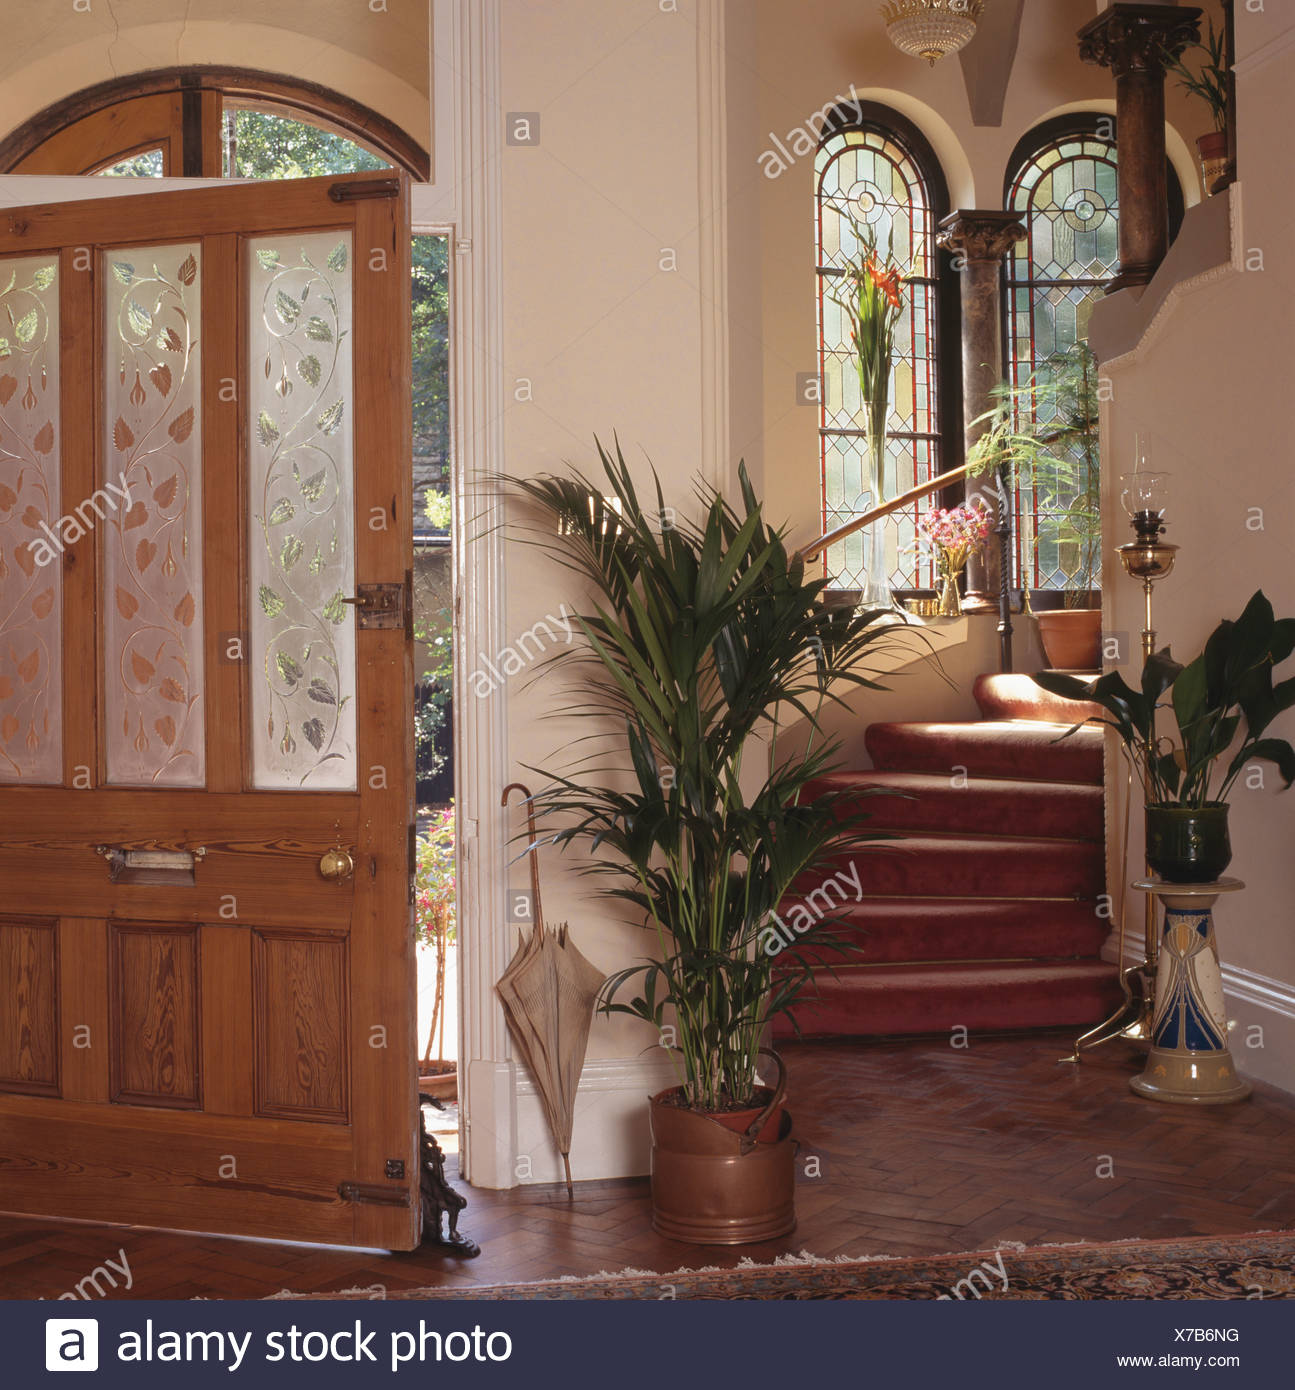 Green Houseplants On Either Side Of Staircase In Cream Hall With